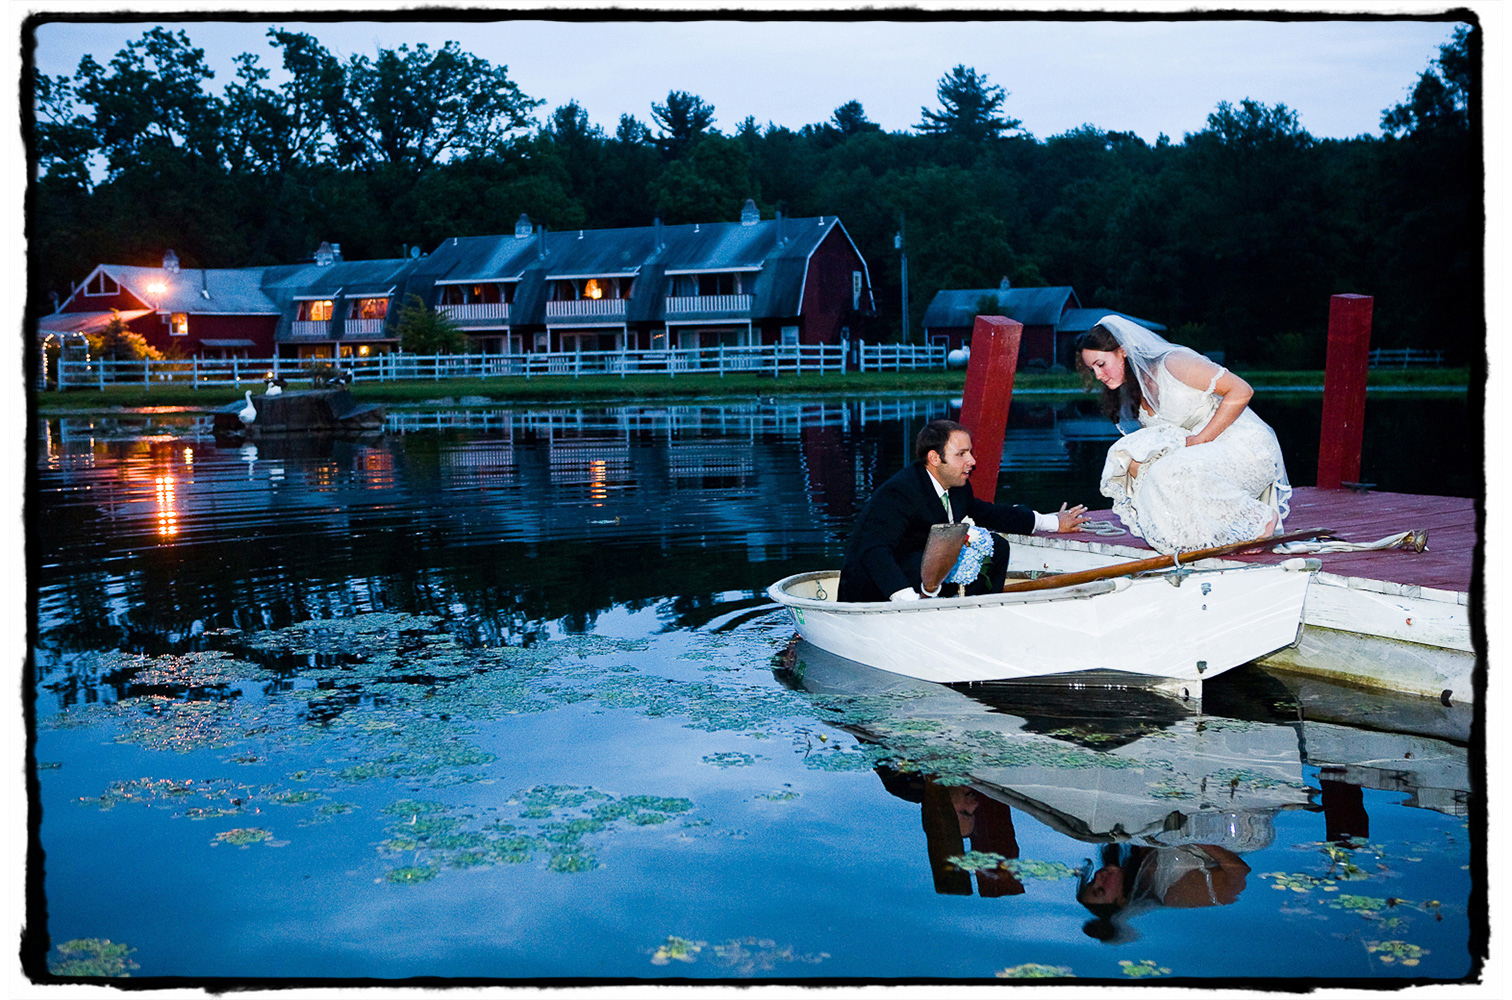 Alicia and Brian were living aboard their sailboat, Sarabande, in New Jersey leading up to the wedding.  Their plan?  To sail around the world after tying the knot.  They brought their ship's dingy to row across the pond at The Kaaterskill between the ceremony and reception!  They have been sailing abroad ever since!